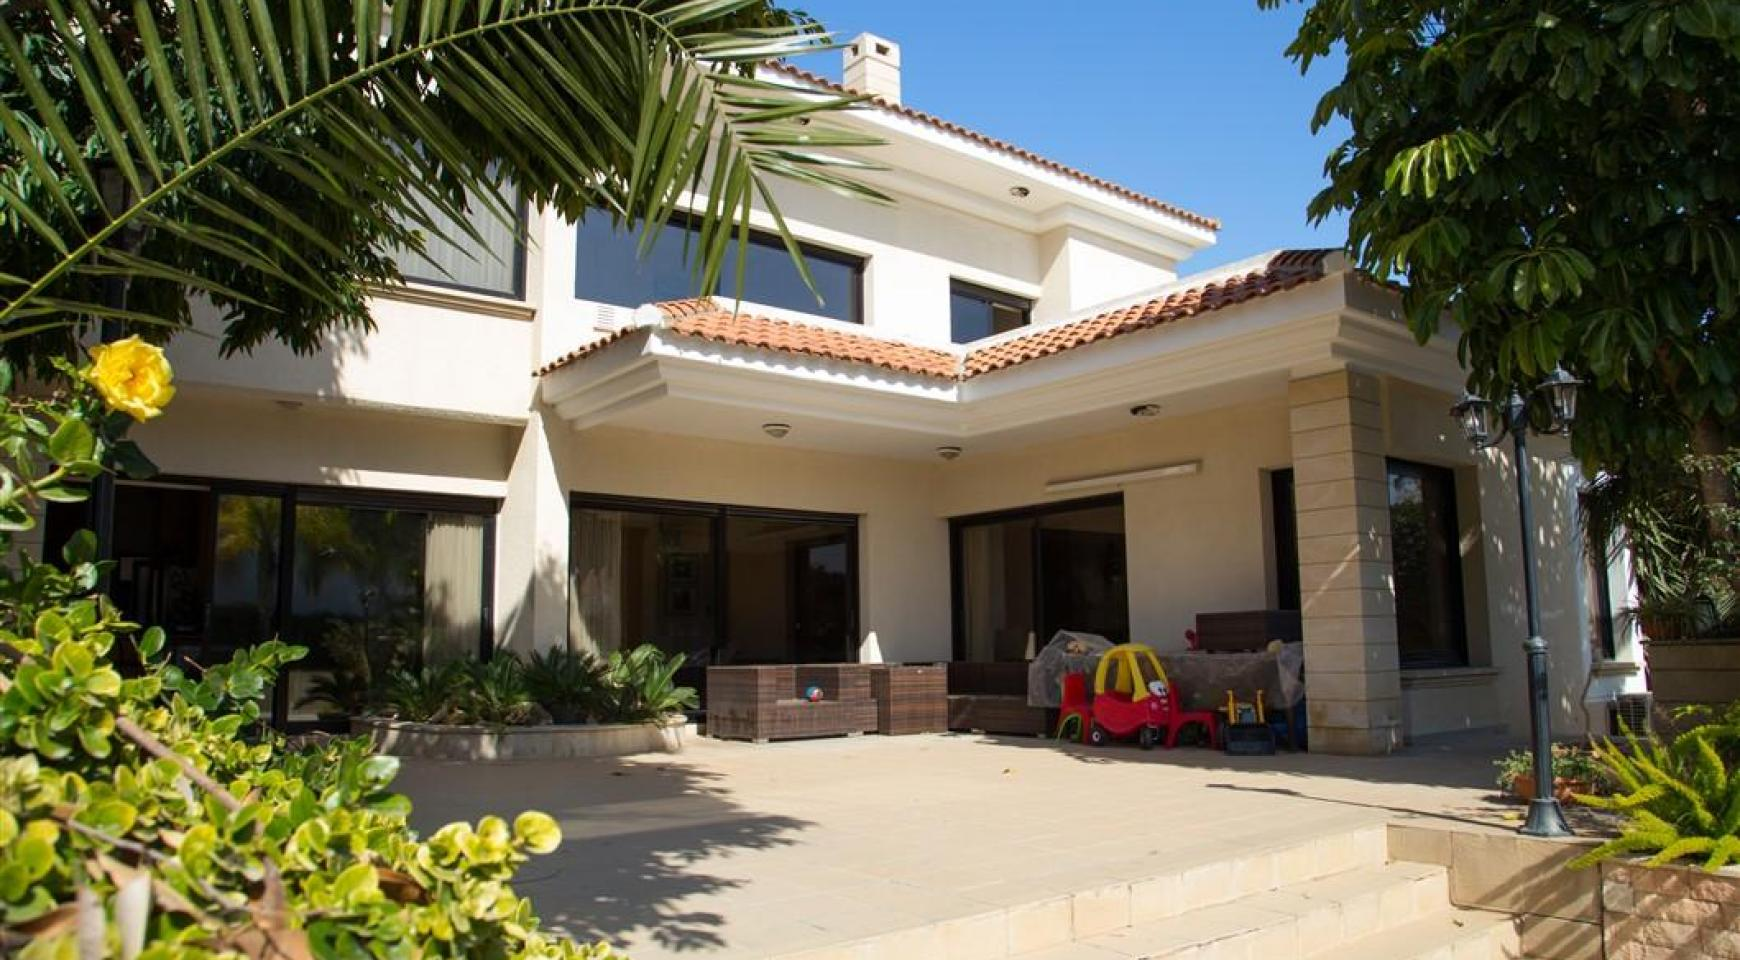 4 Bedroom Villa in Germasogeia Area - 3